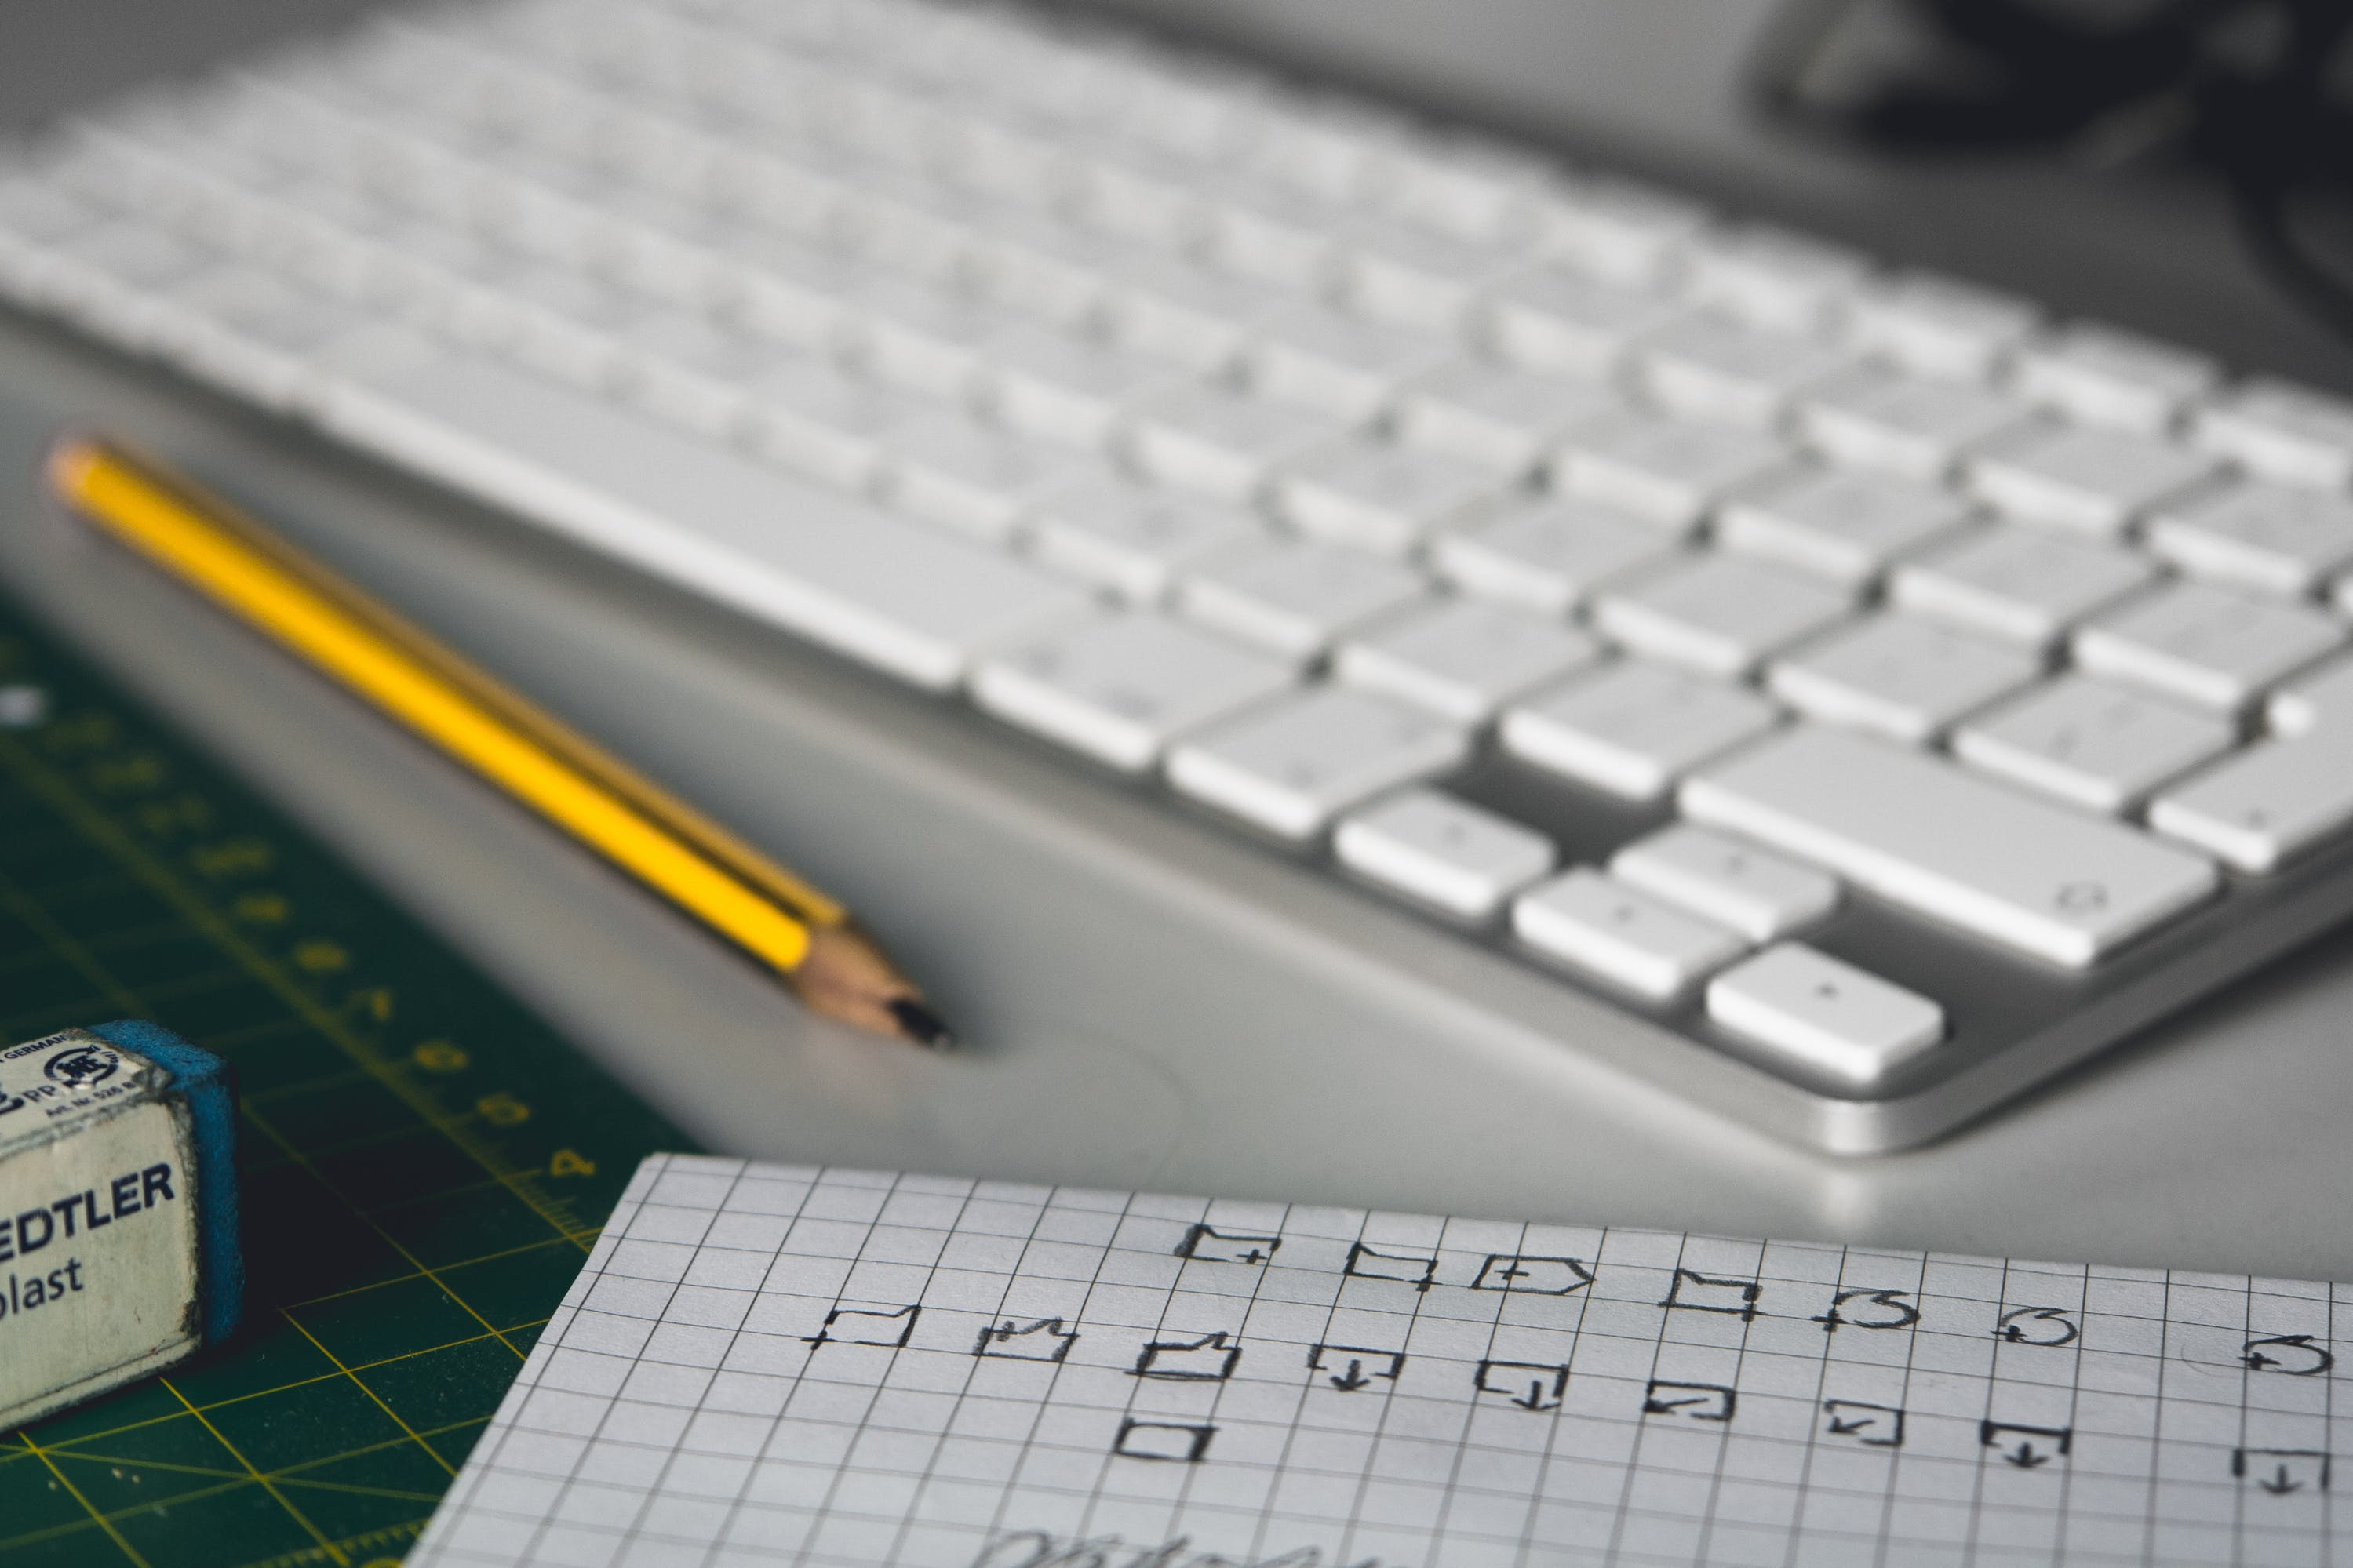 Apple Keyboard Near Black and Yellow Pencil on White Surface in Room